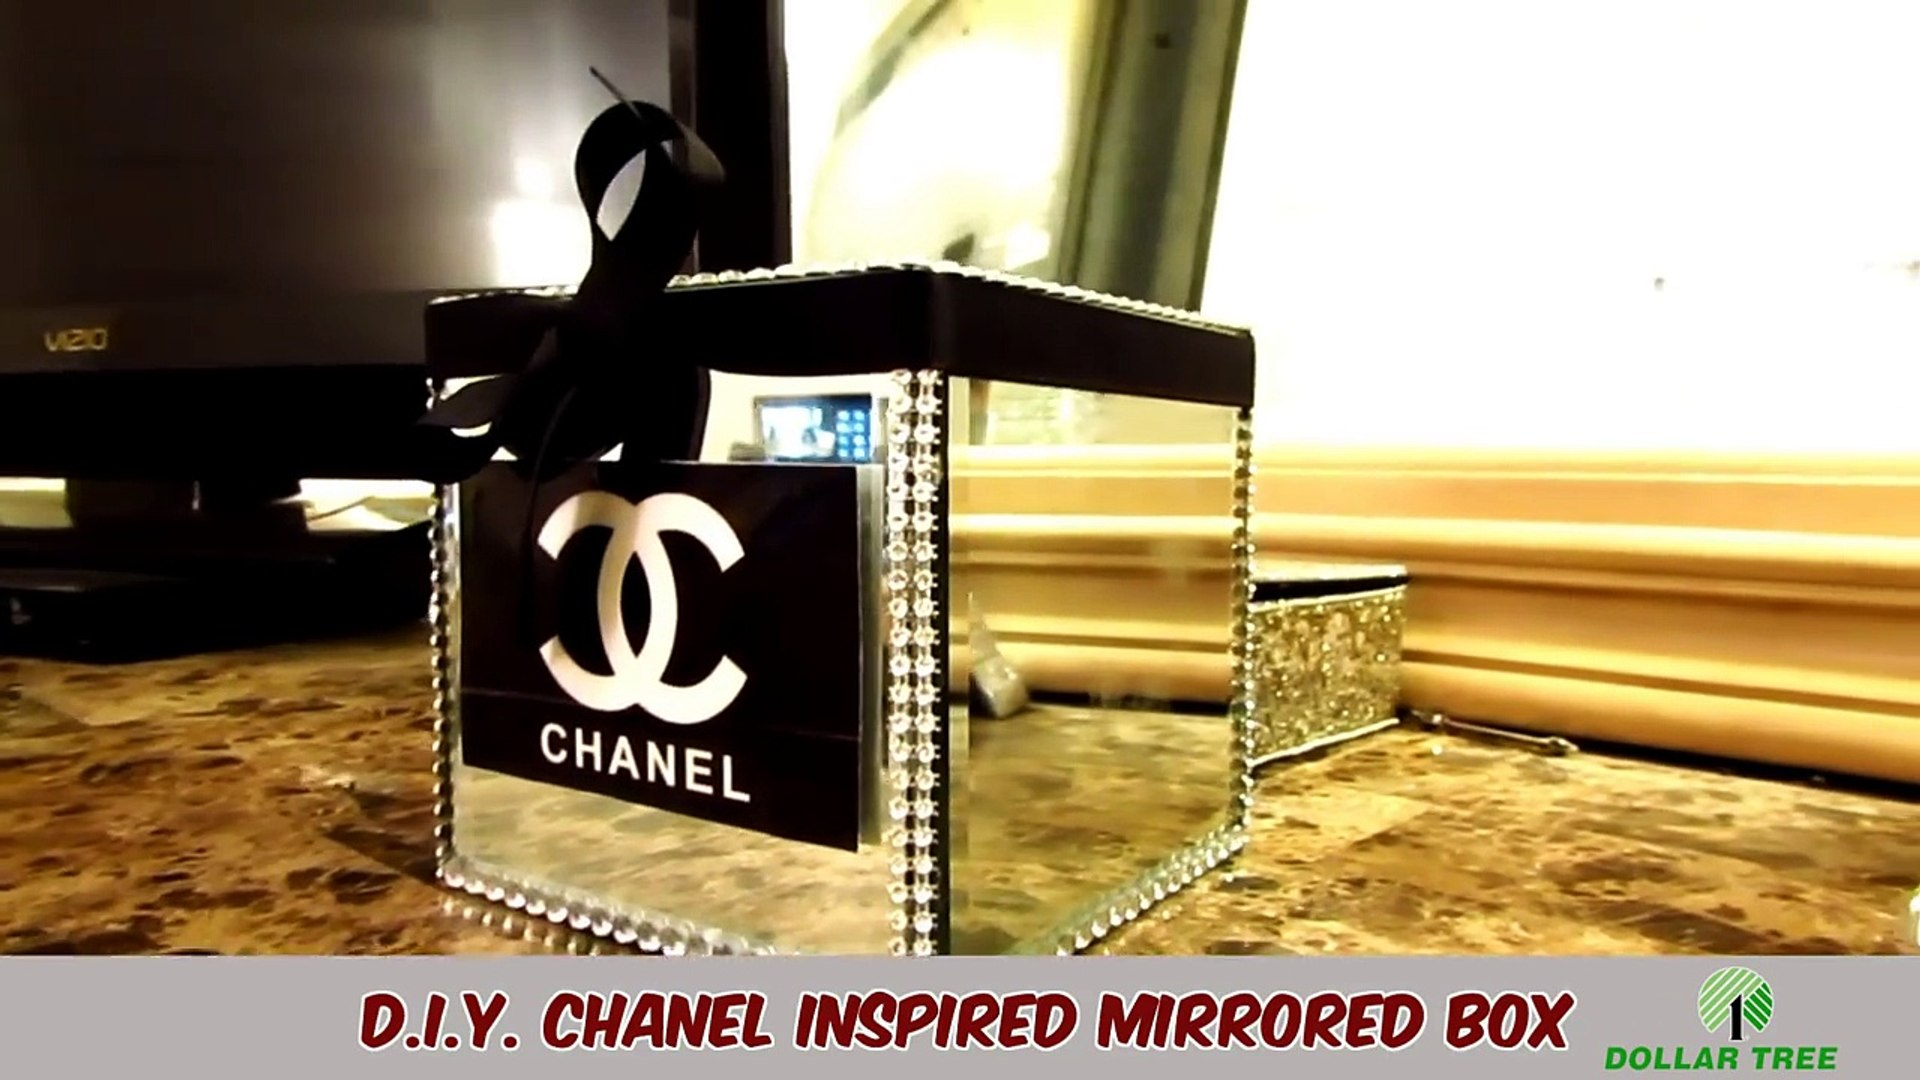 D I Y Chanel Inspired Mirrored Box Dollar Tree Video Dailymotion